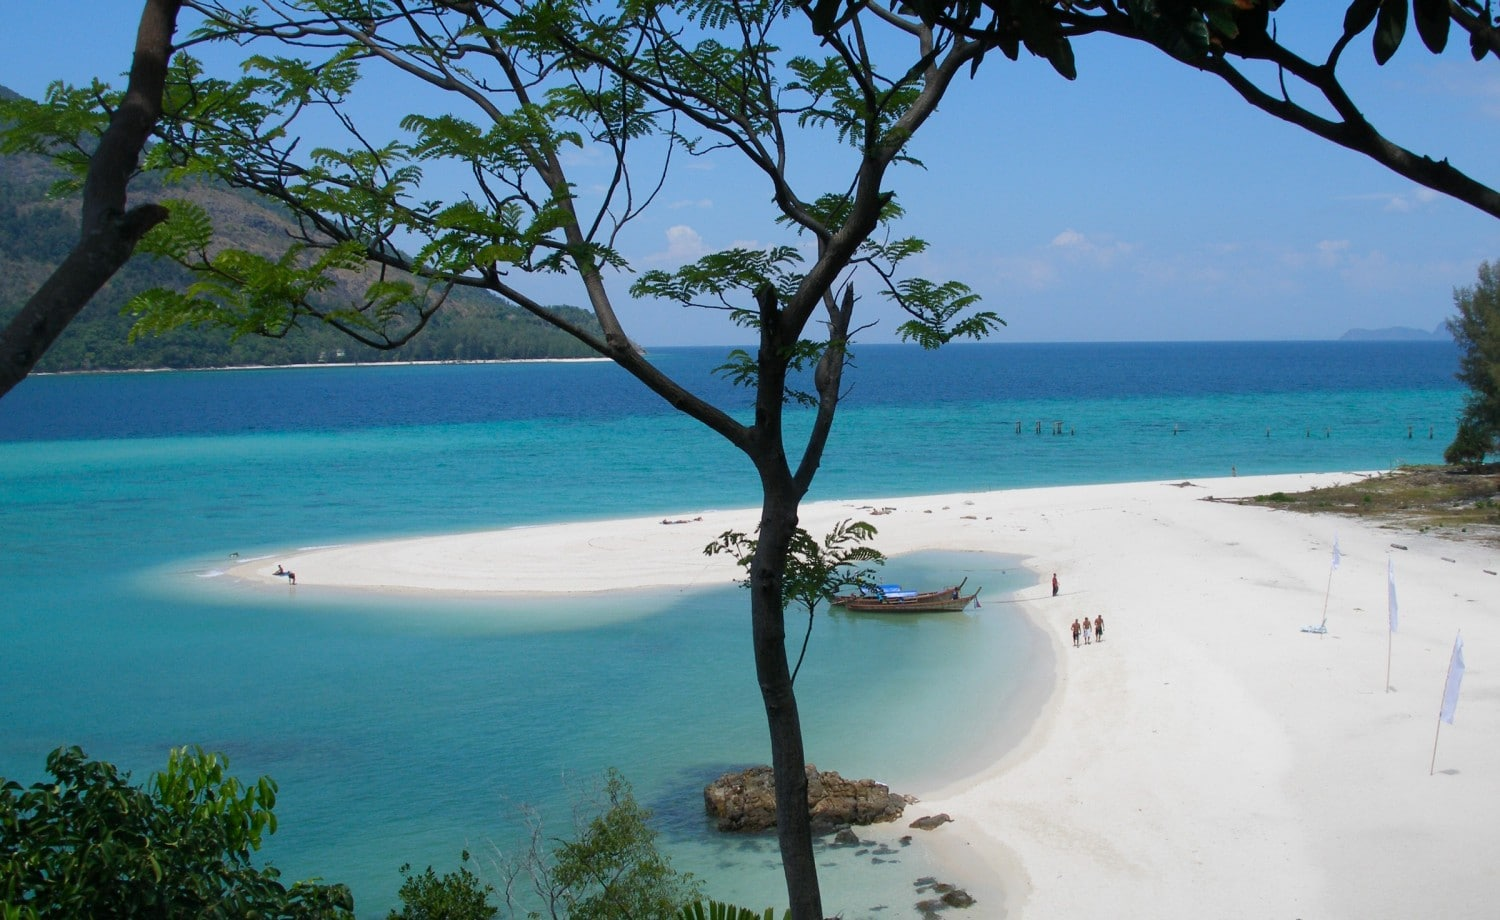 Koh Lipe Four awesome Southeast Asia travel itineraries I Photography I Itinerary I Landscape I Food I Architecture I Laos I Thailand I Cambodia I Myanmar I Malaysia I Vietnam. Read the full travel guide now #travel #backpacking